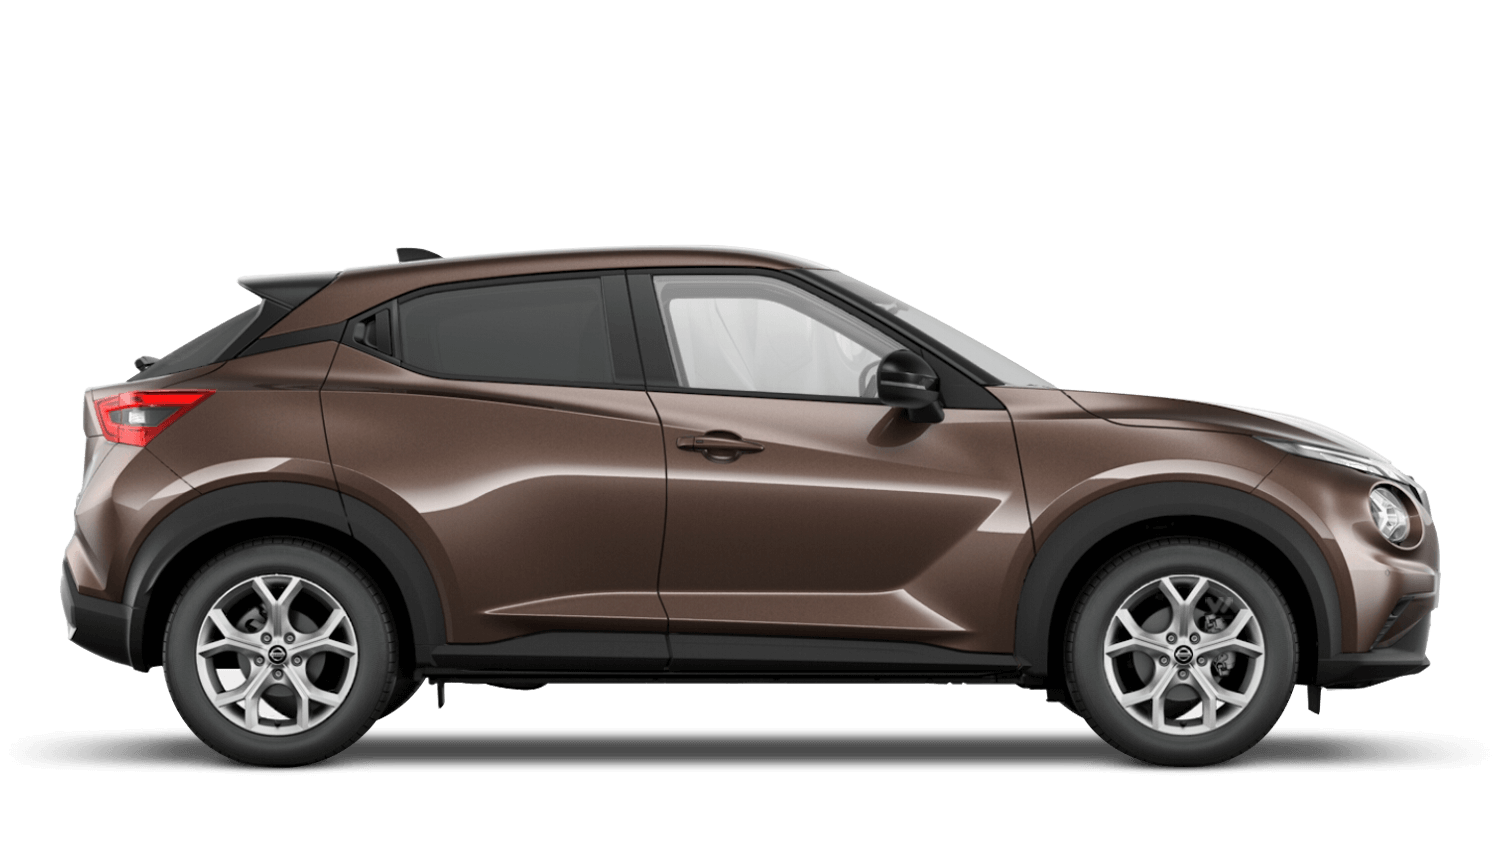 Chestnut Bronze Next Generation Nissan Juke